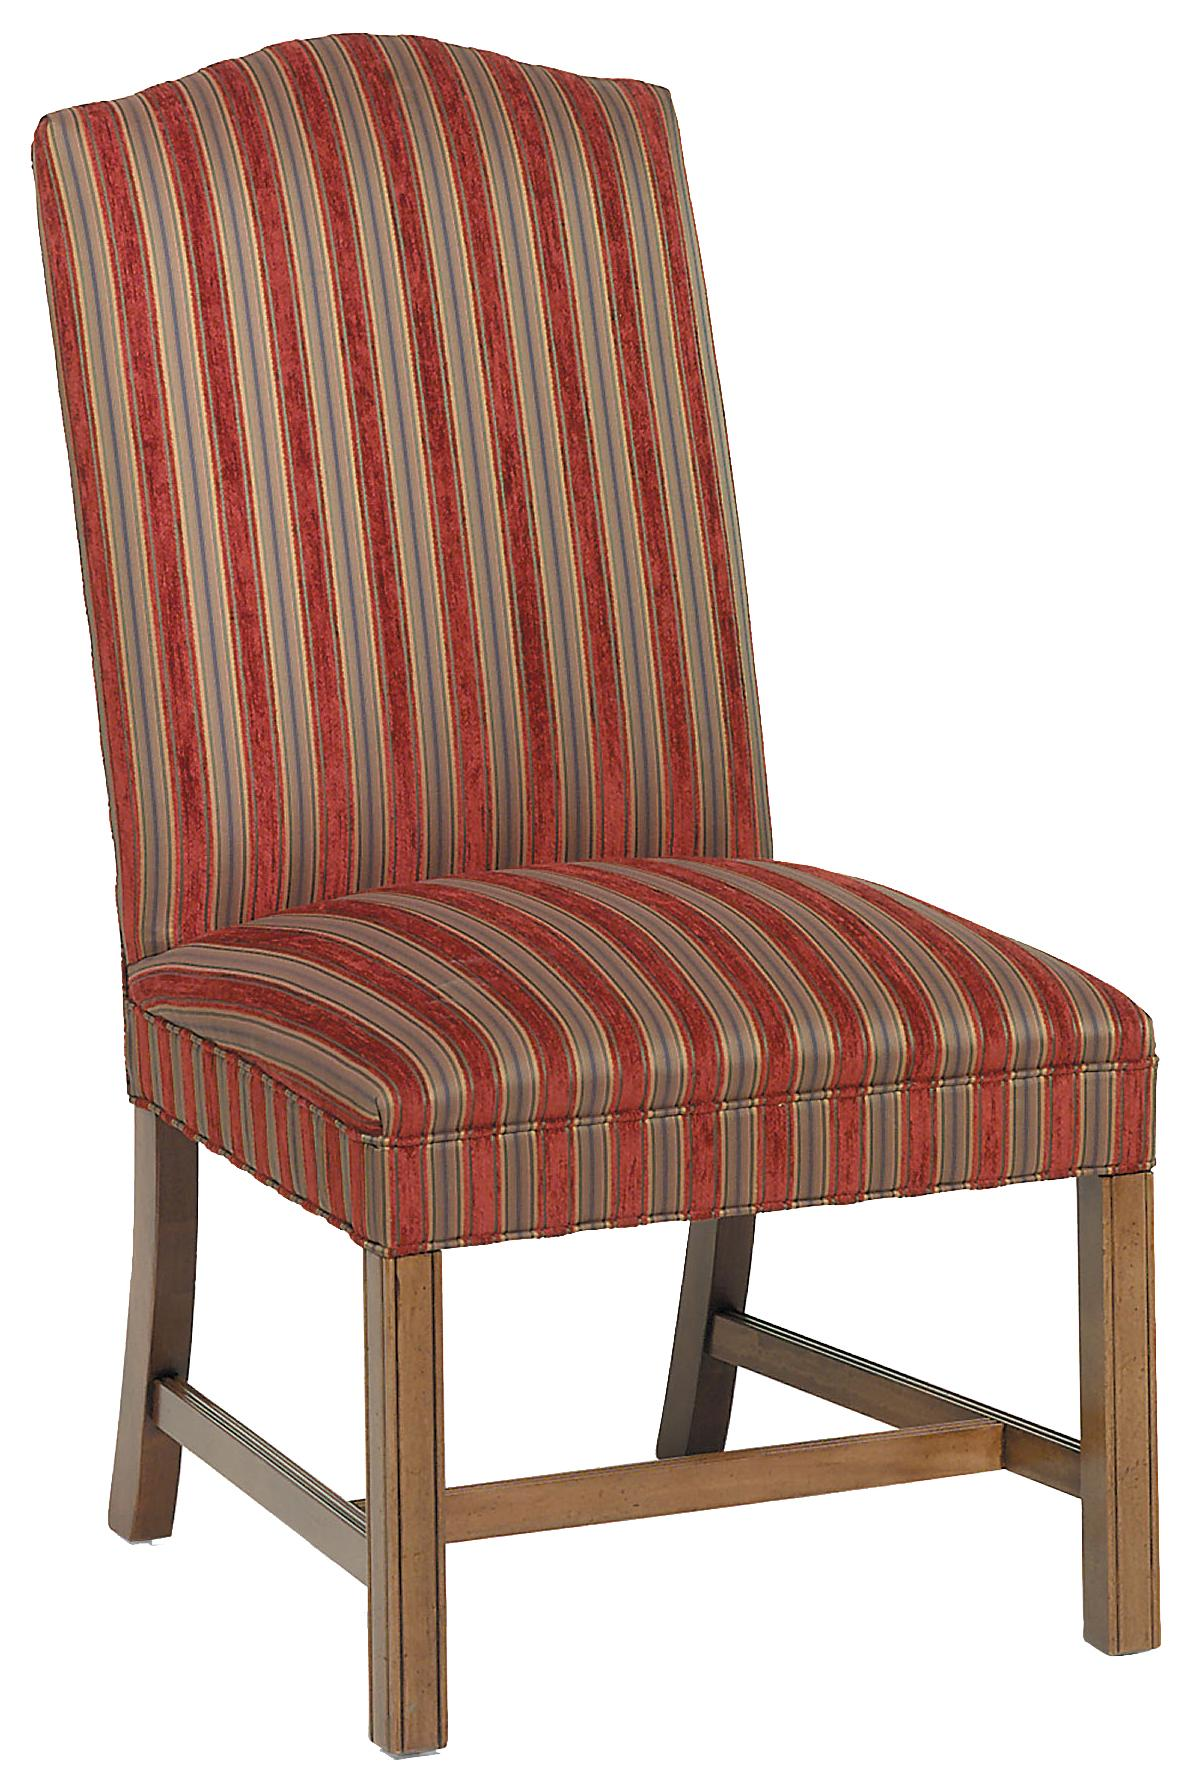 Fairfield Chairs Exposed Wood Chair - Item Number: 1093-05